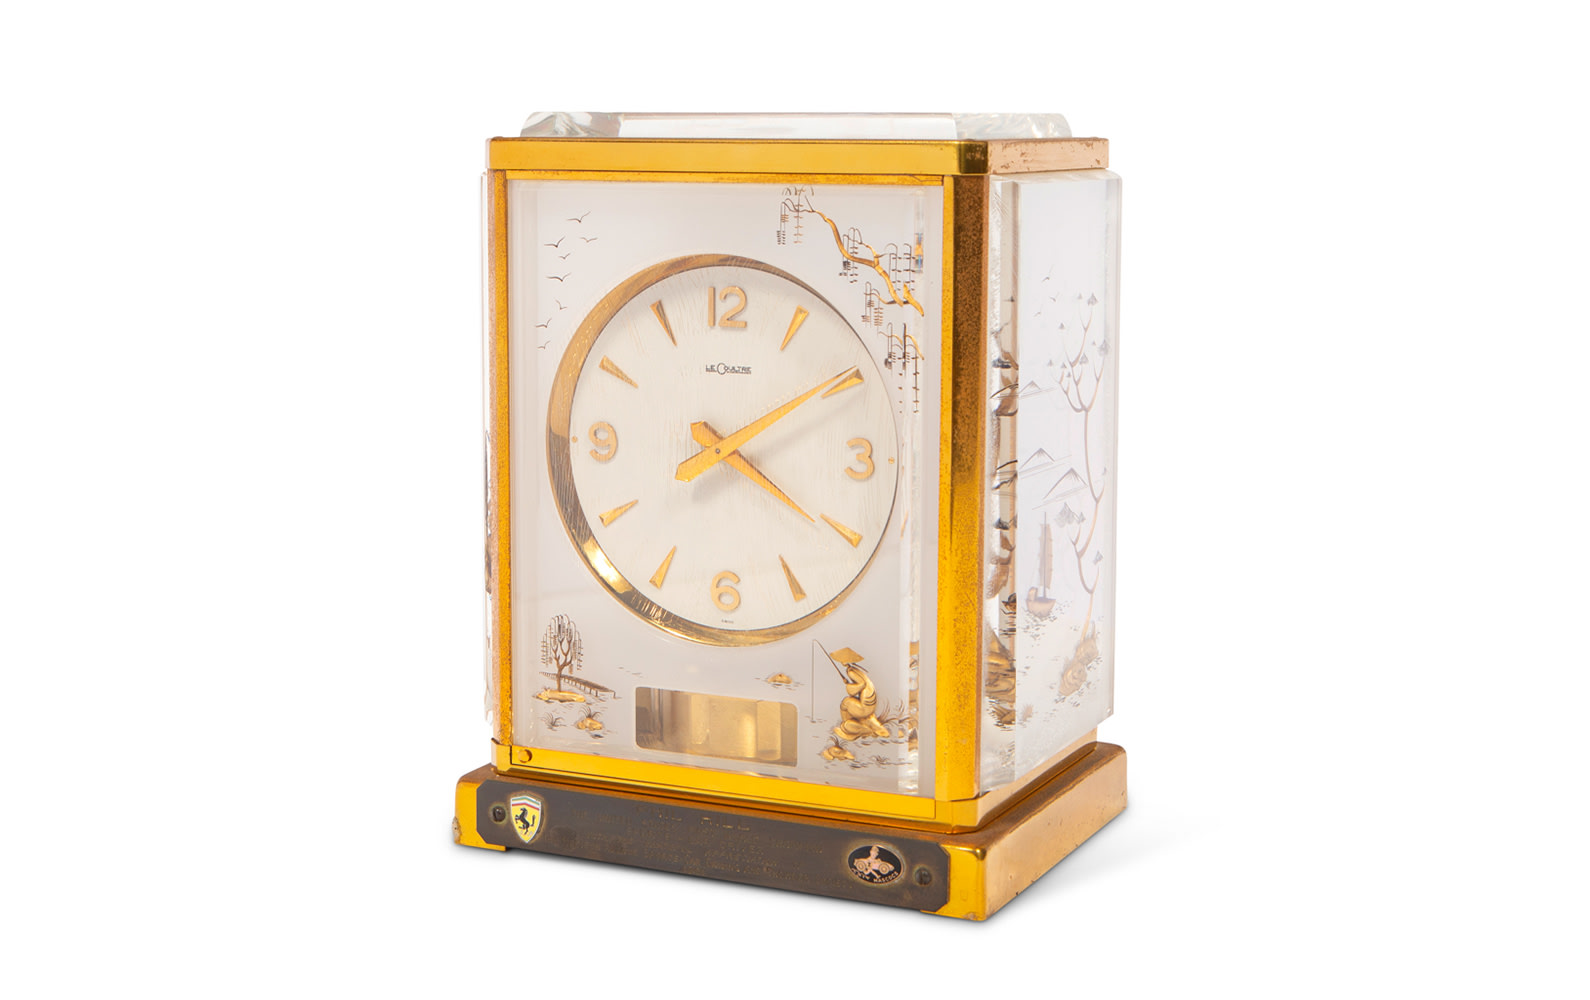 Jaeger-LeCoultre Atmos Clock Presented to Phil Hill by the Madison Avenue Sports-Car Driving and Chowder Society, 1961